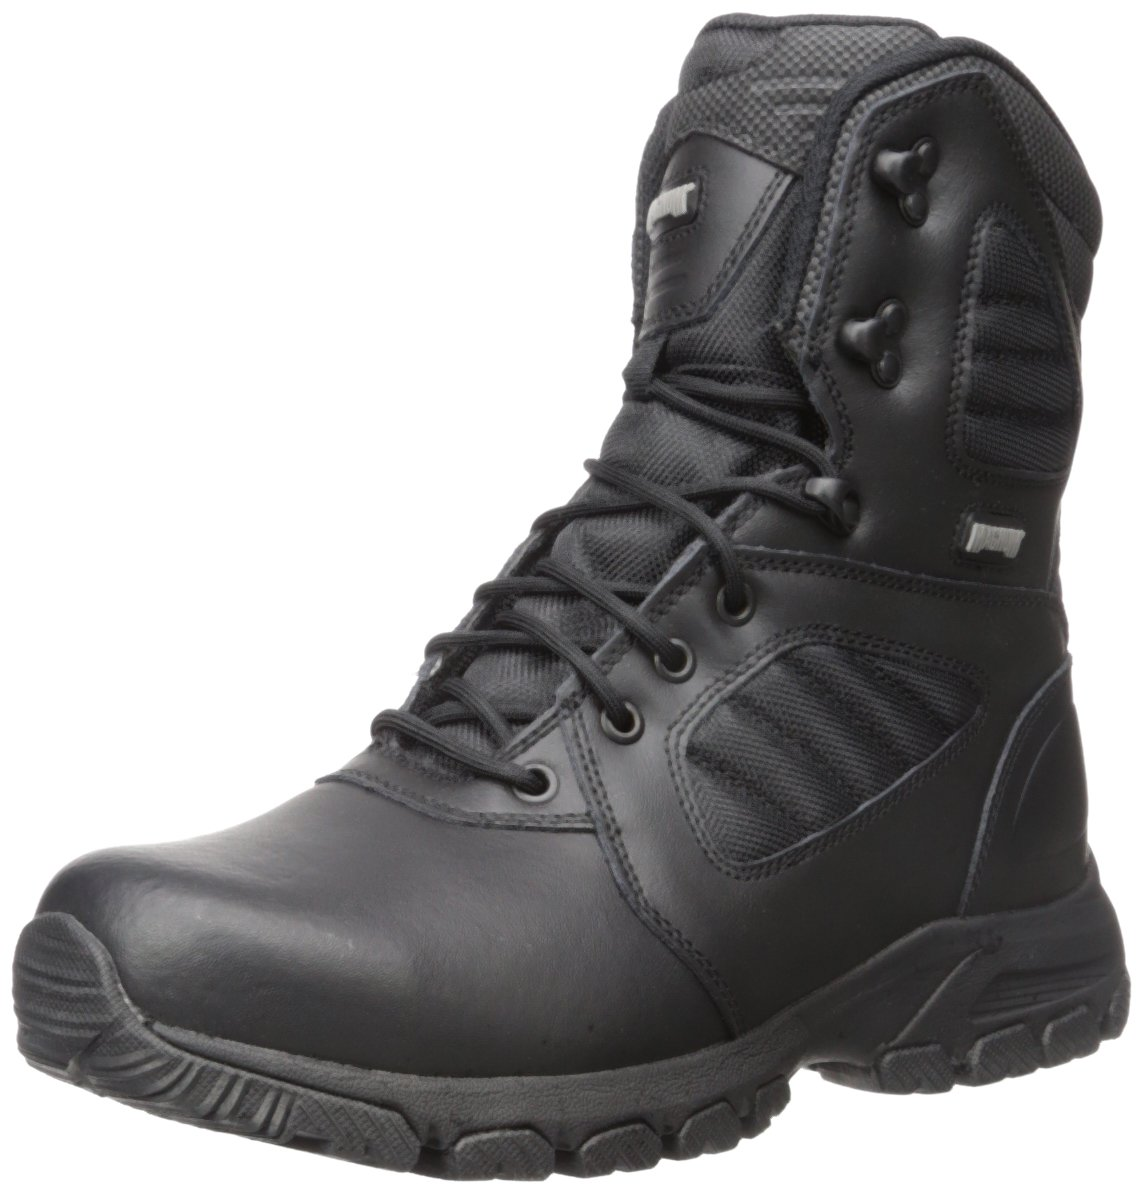 Magnum Men's Response III 8'' Steel Toe Military and Tactical Boot, Black, 15 M US